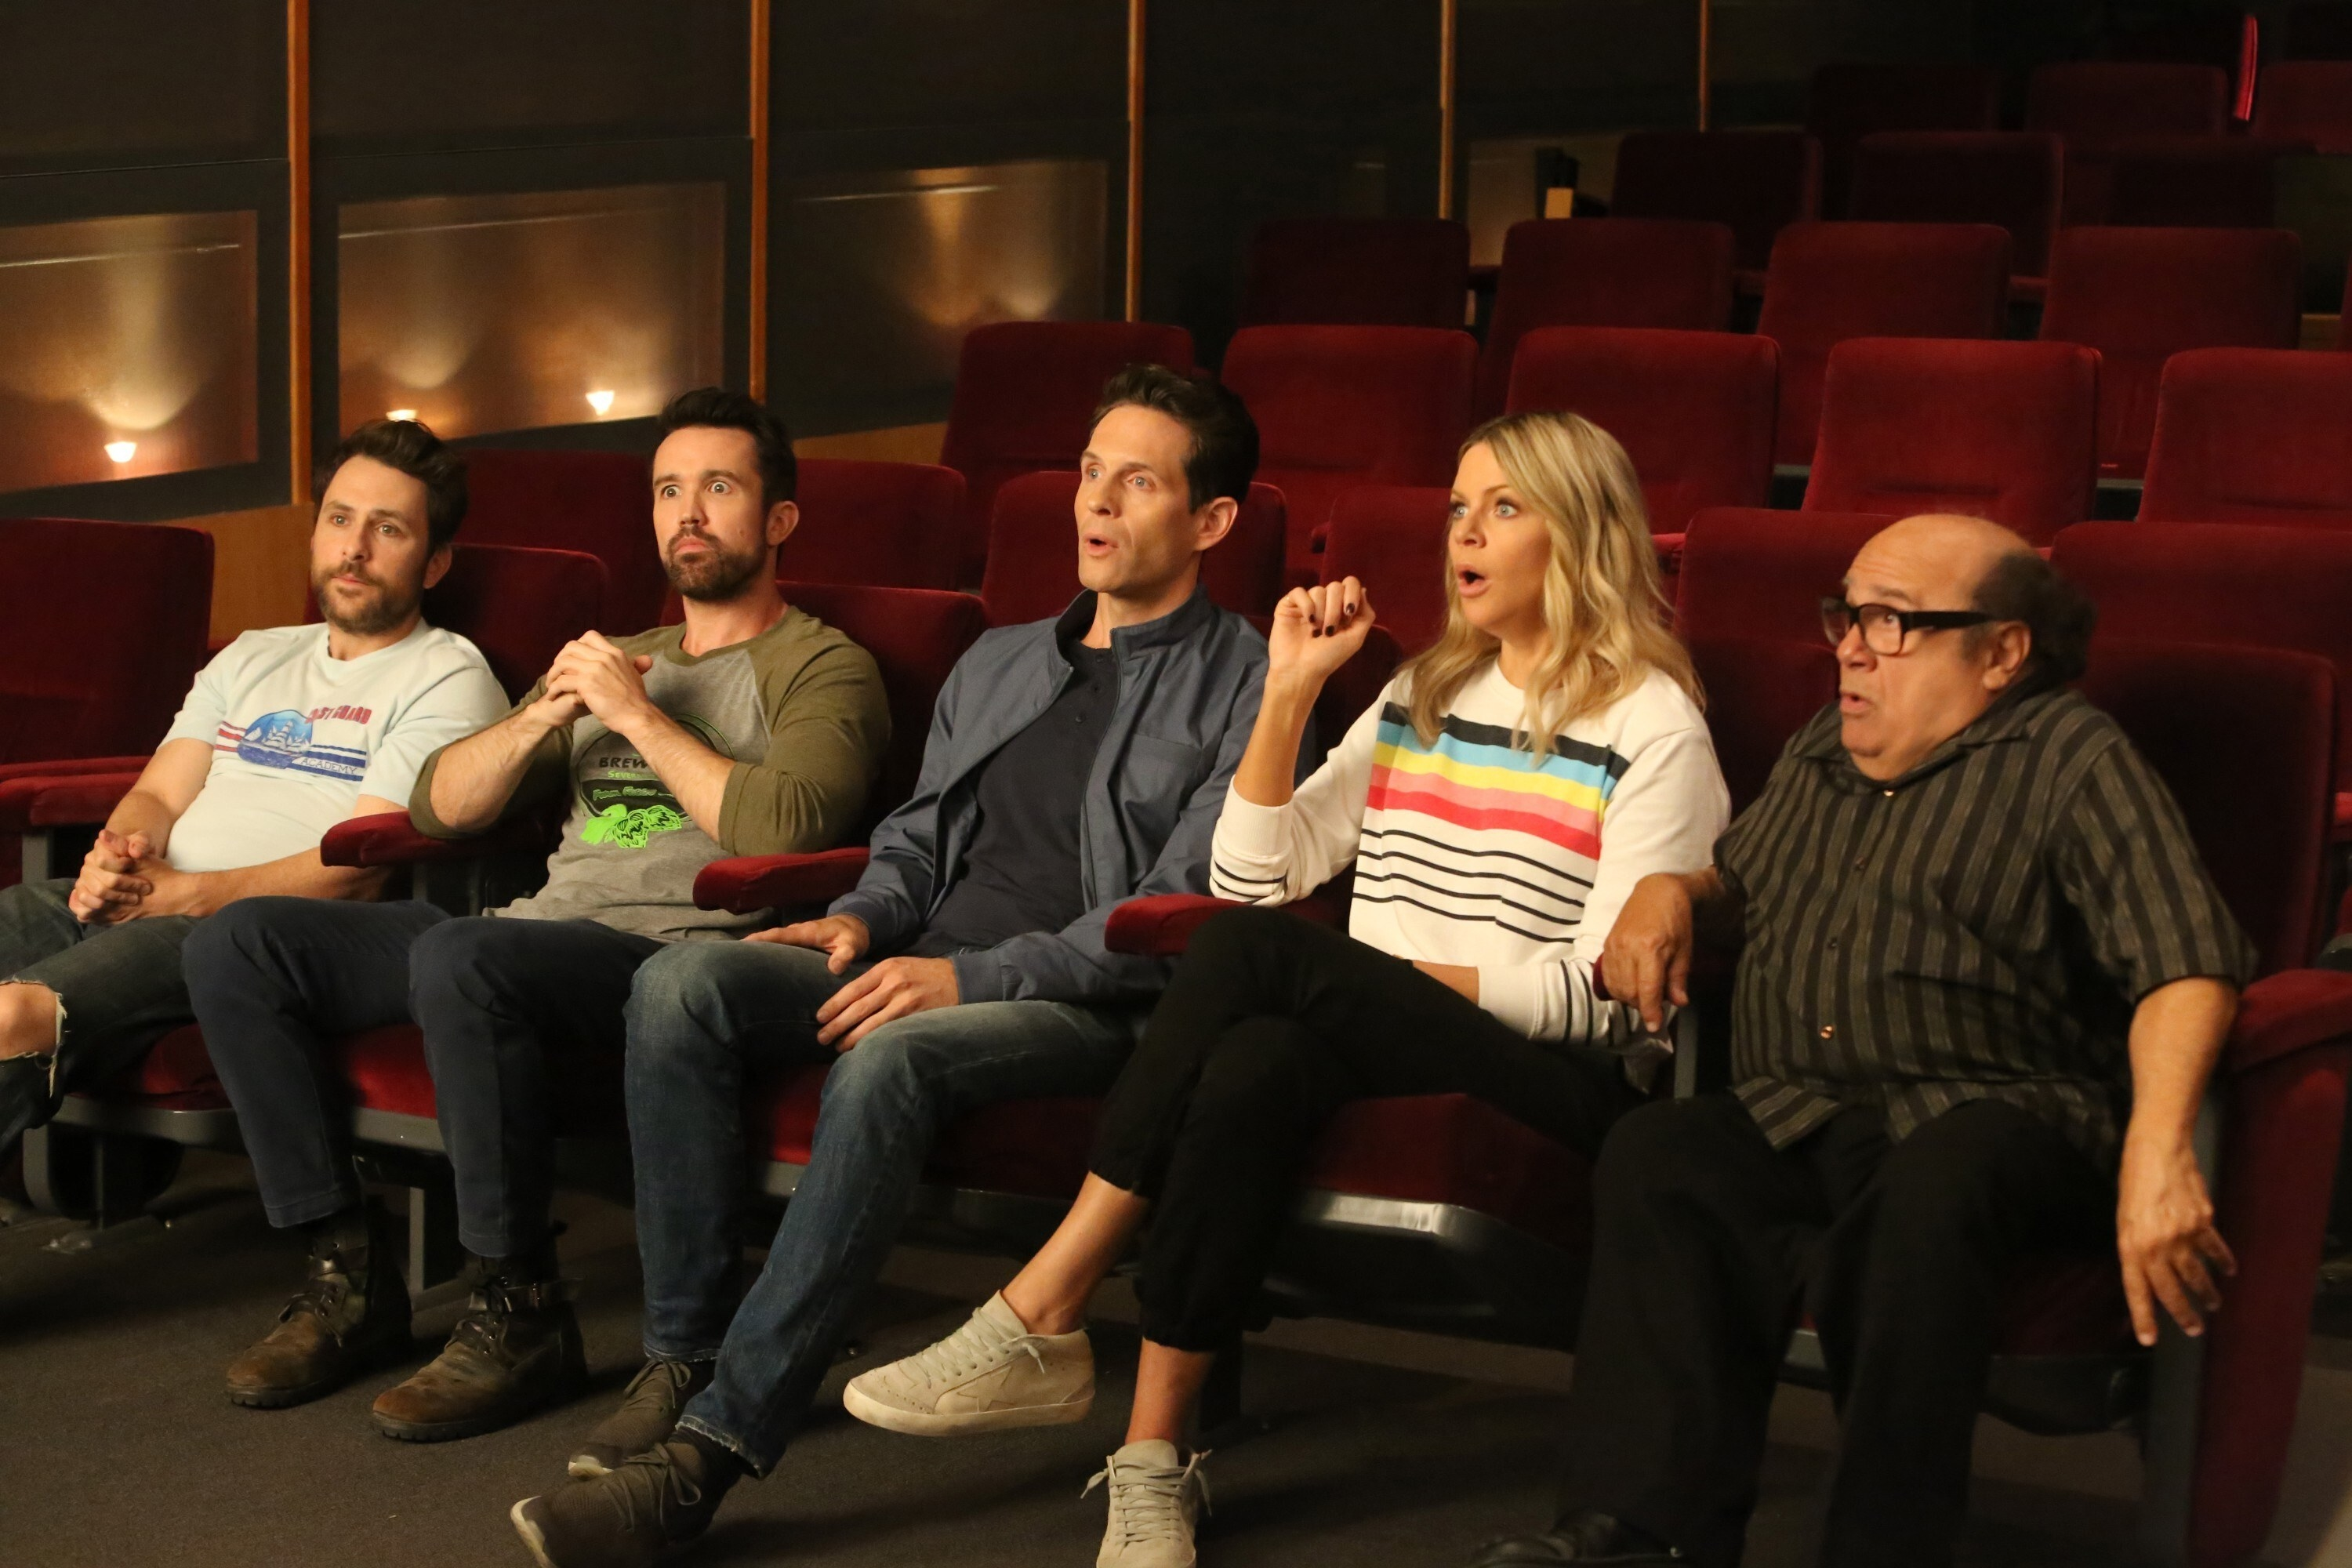 Charlie Day, Rob McElhenney, Glenn Howerton, Kaitlin Olson, and Danny DeVito sit in a theater